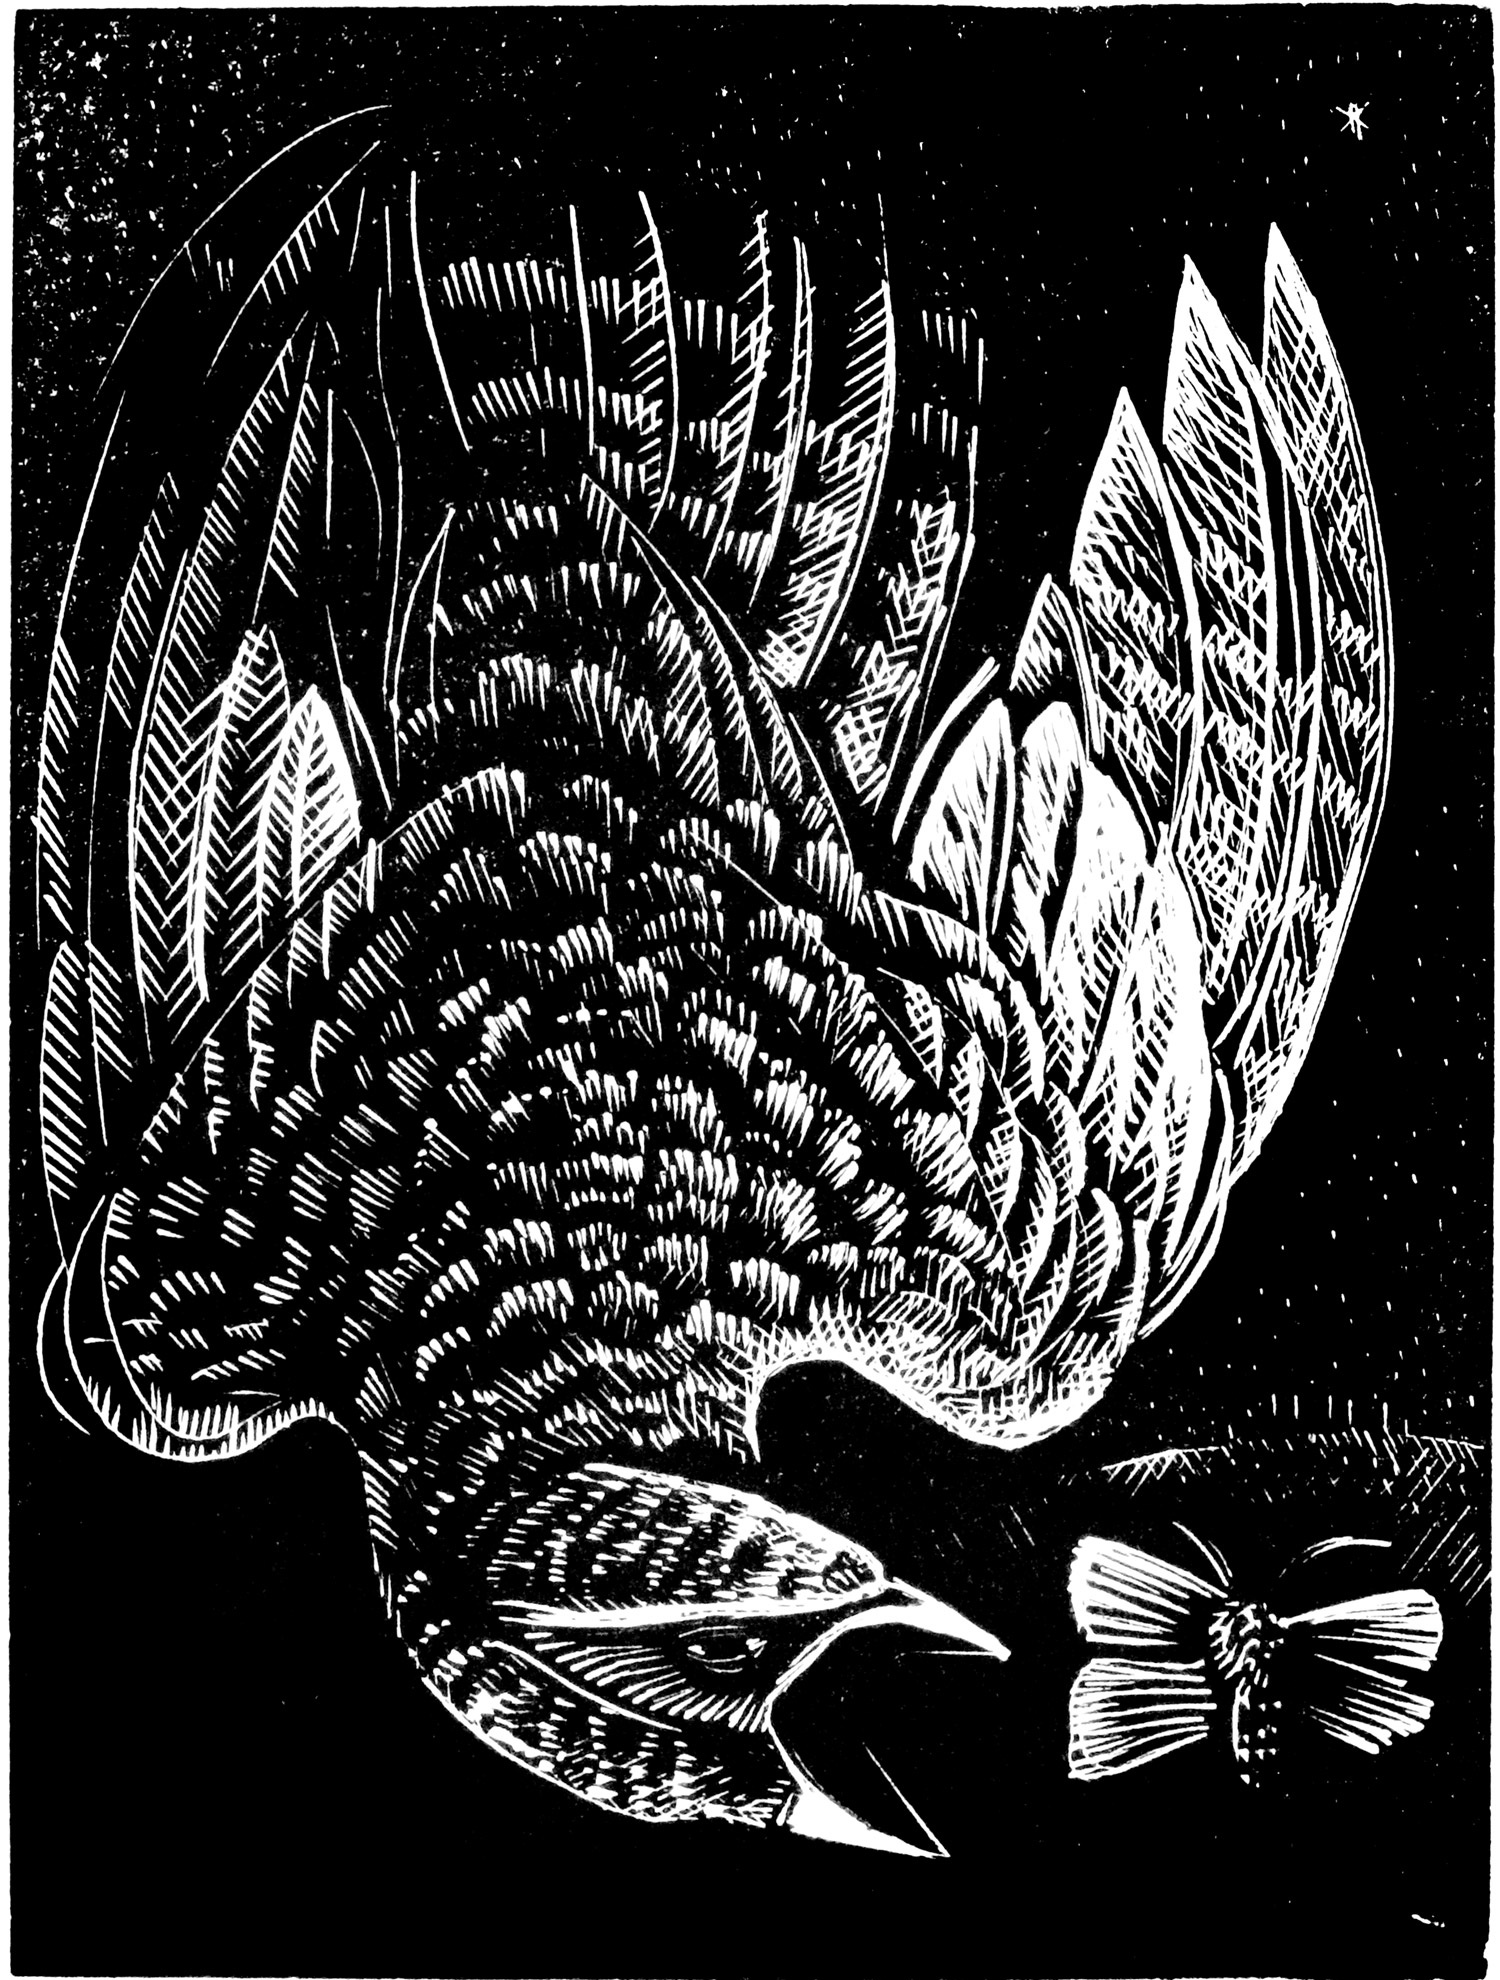 N is for Nightjar by Angela Harding